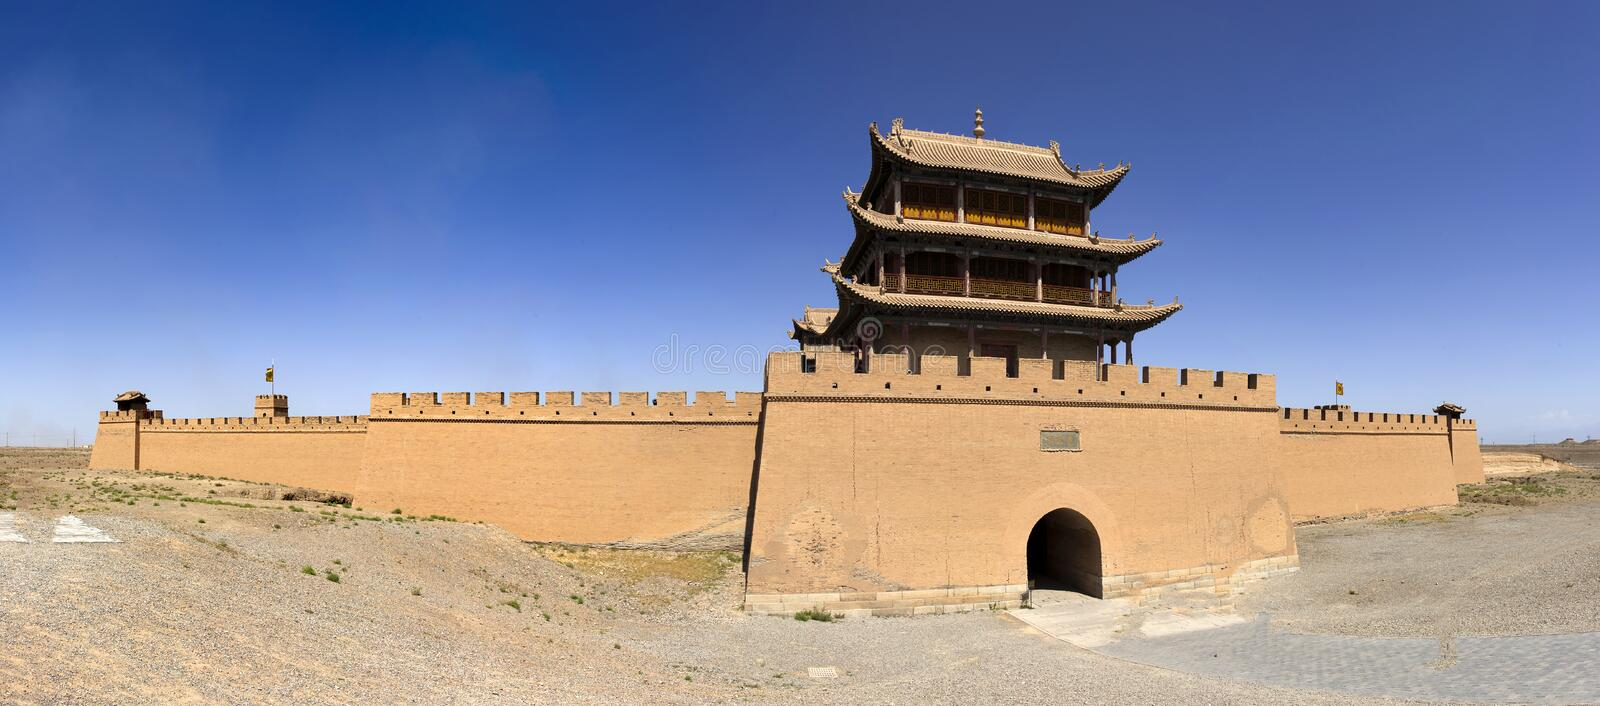 Download Chinese Ancient Tranditional City Gate Stock Image - Image: 23408571